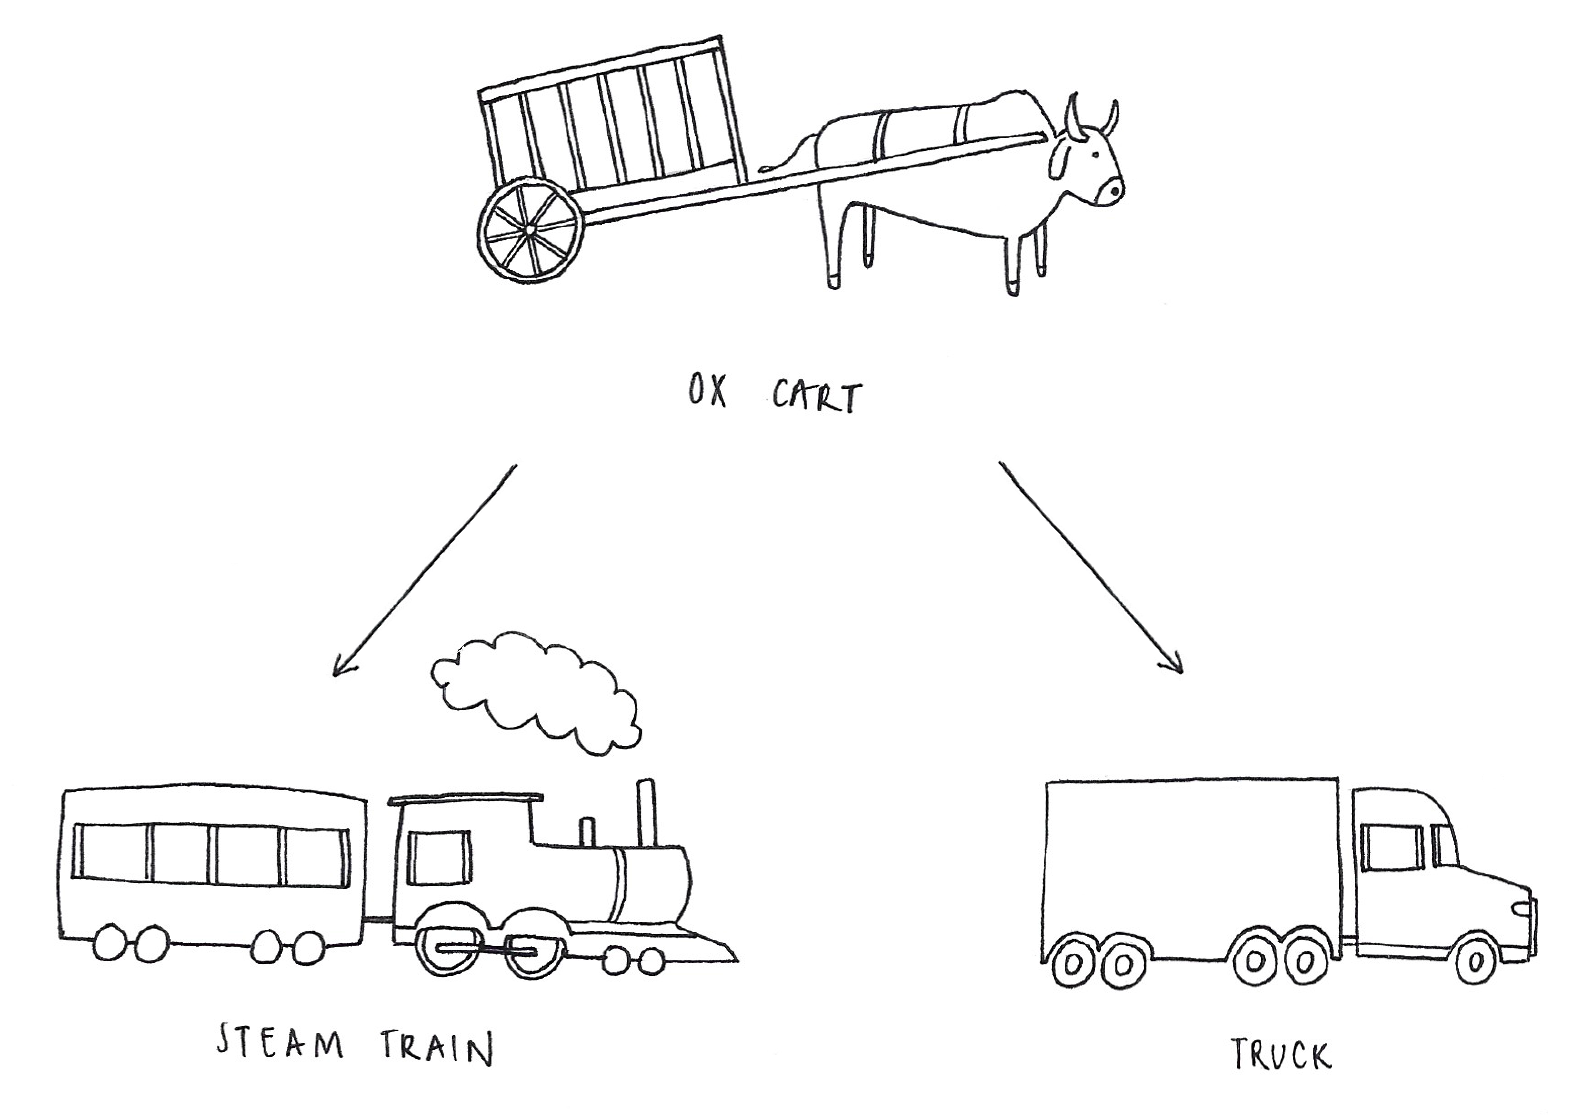 Hand-drawn illustration of an ox cart, with arrows indicating its optimization into a steam engine and a truck.